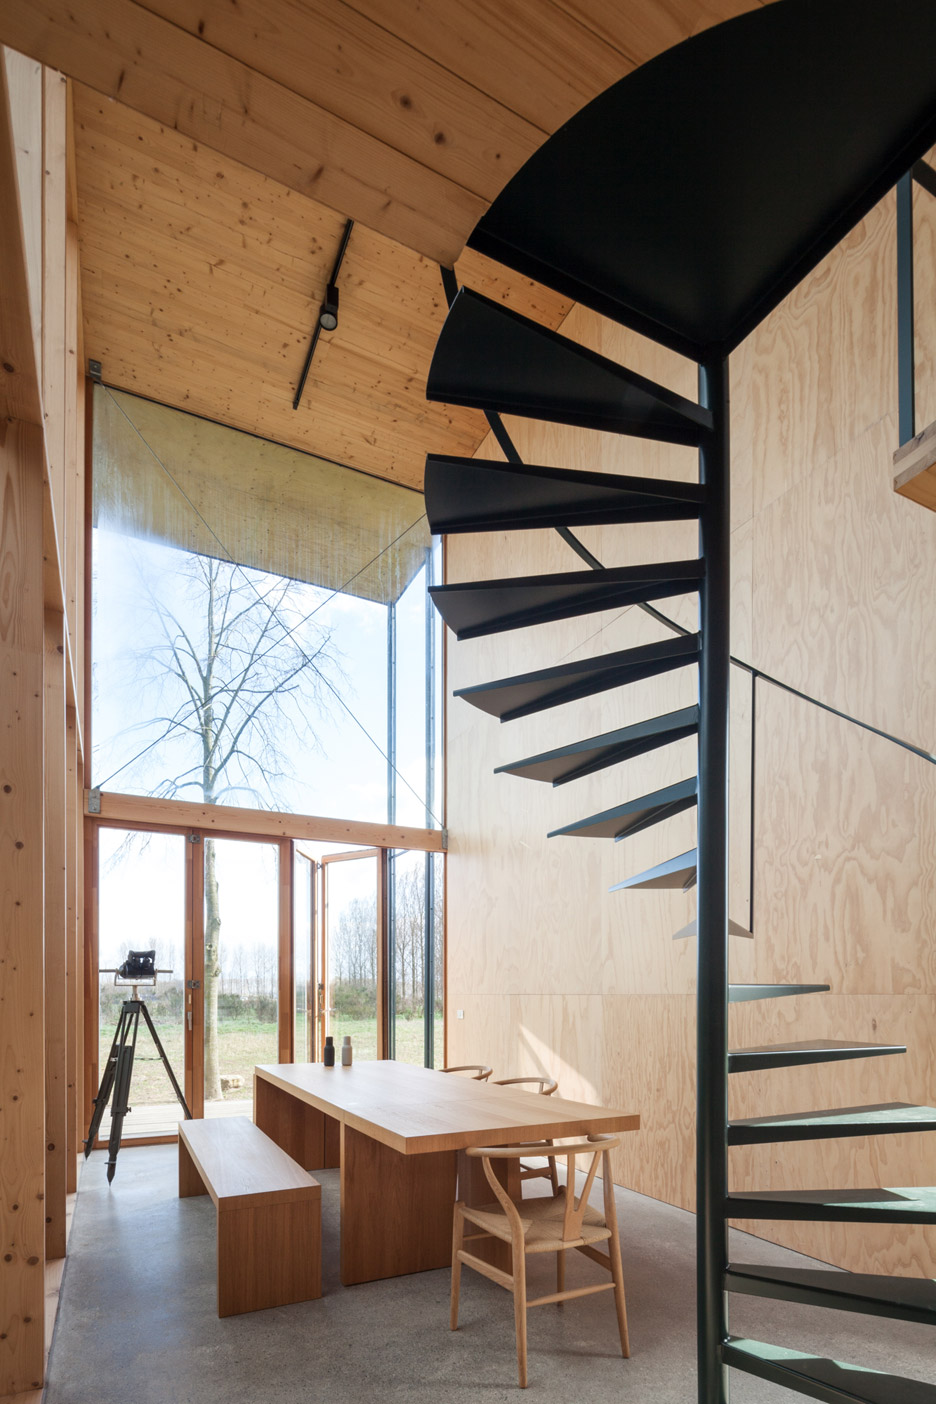 weekend-house-wachtebeke-gafpa_dezeen_936_0